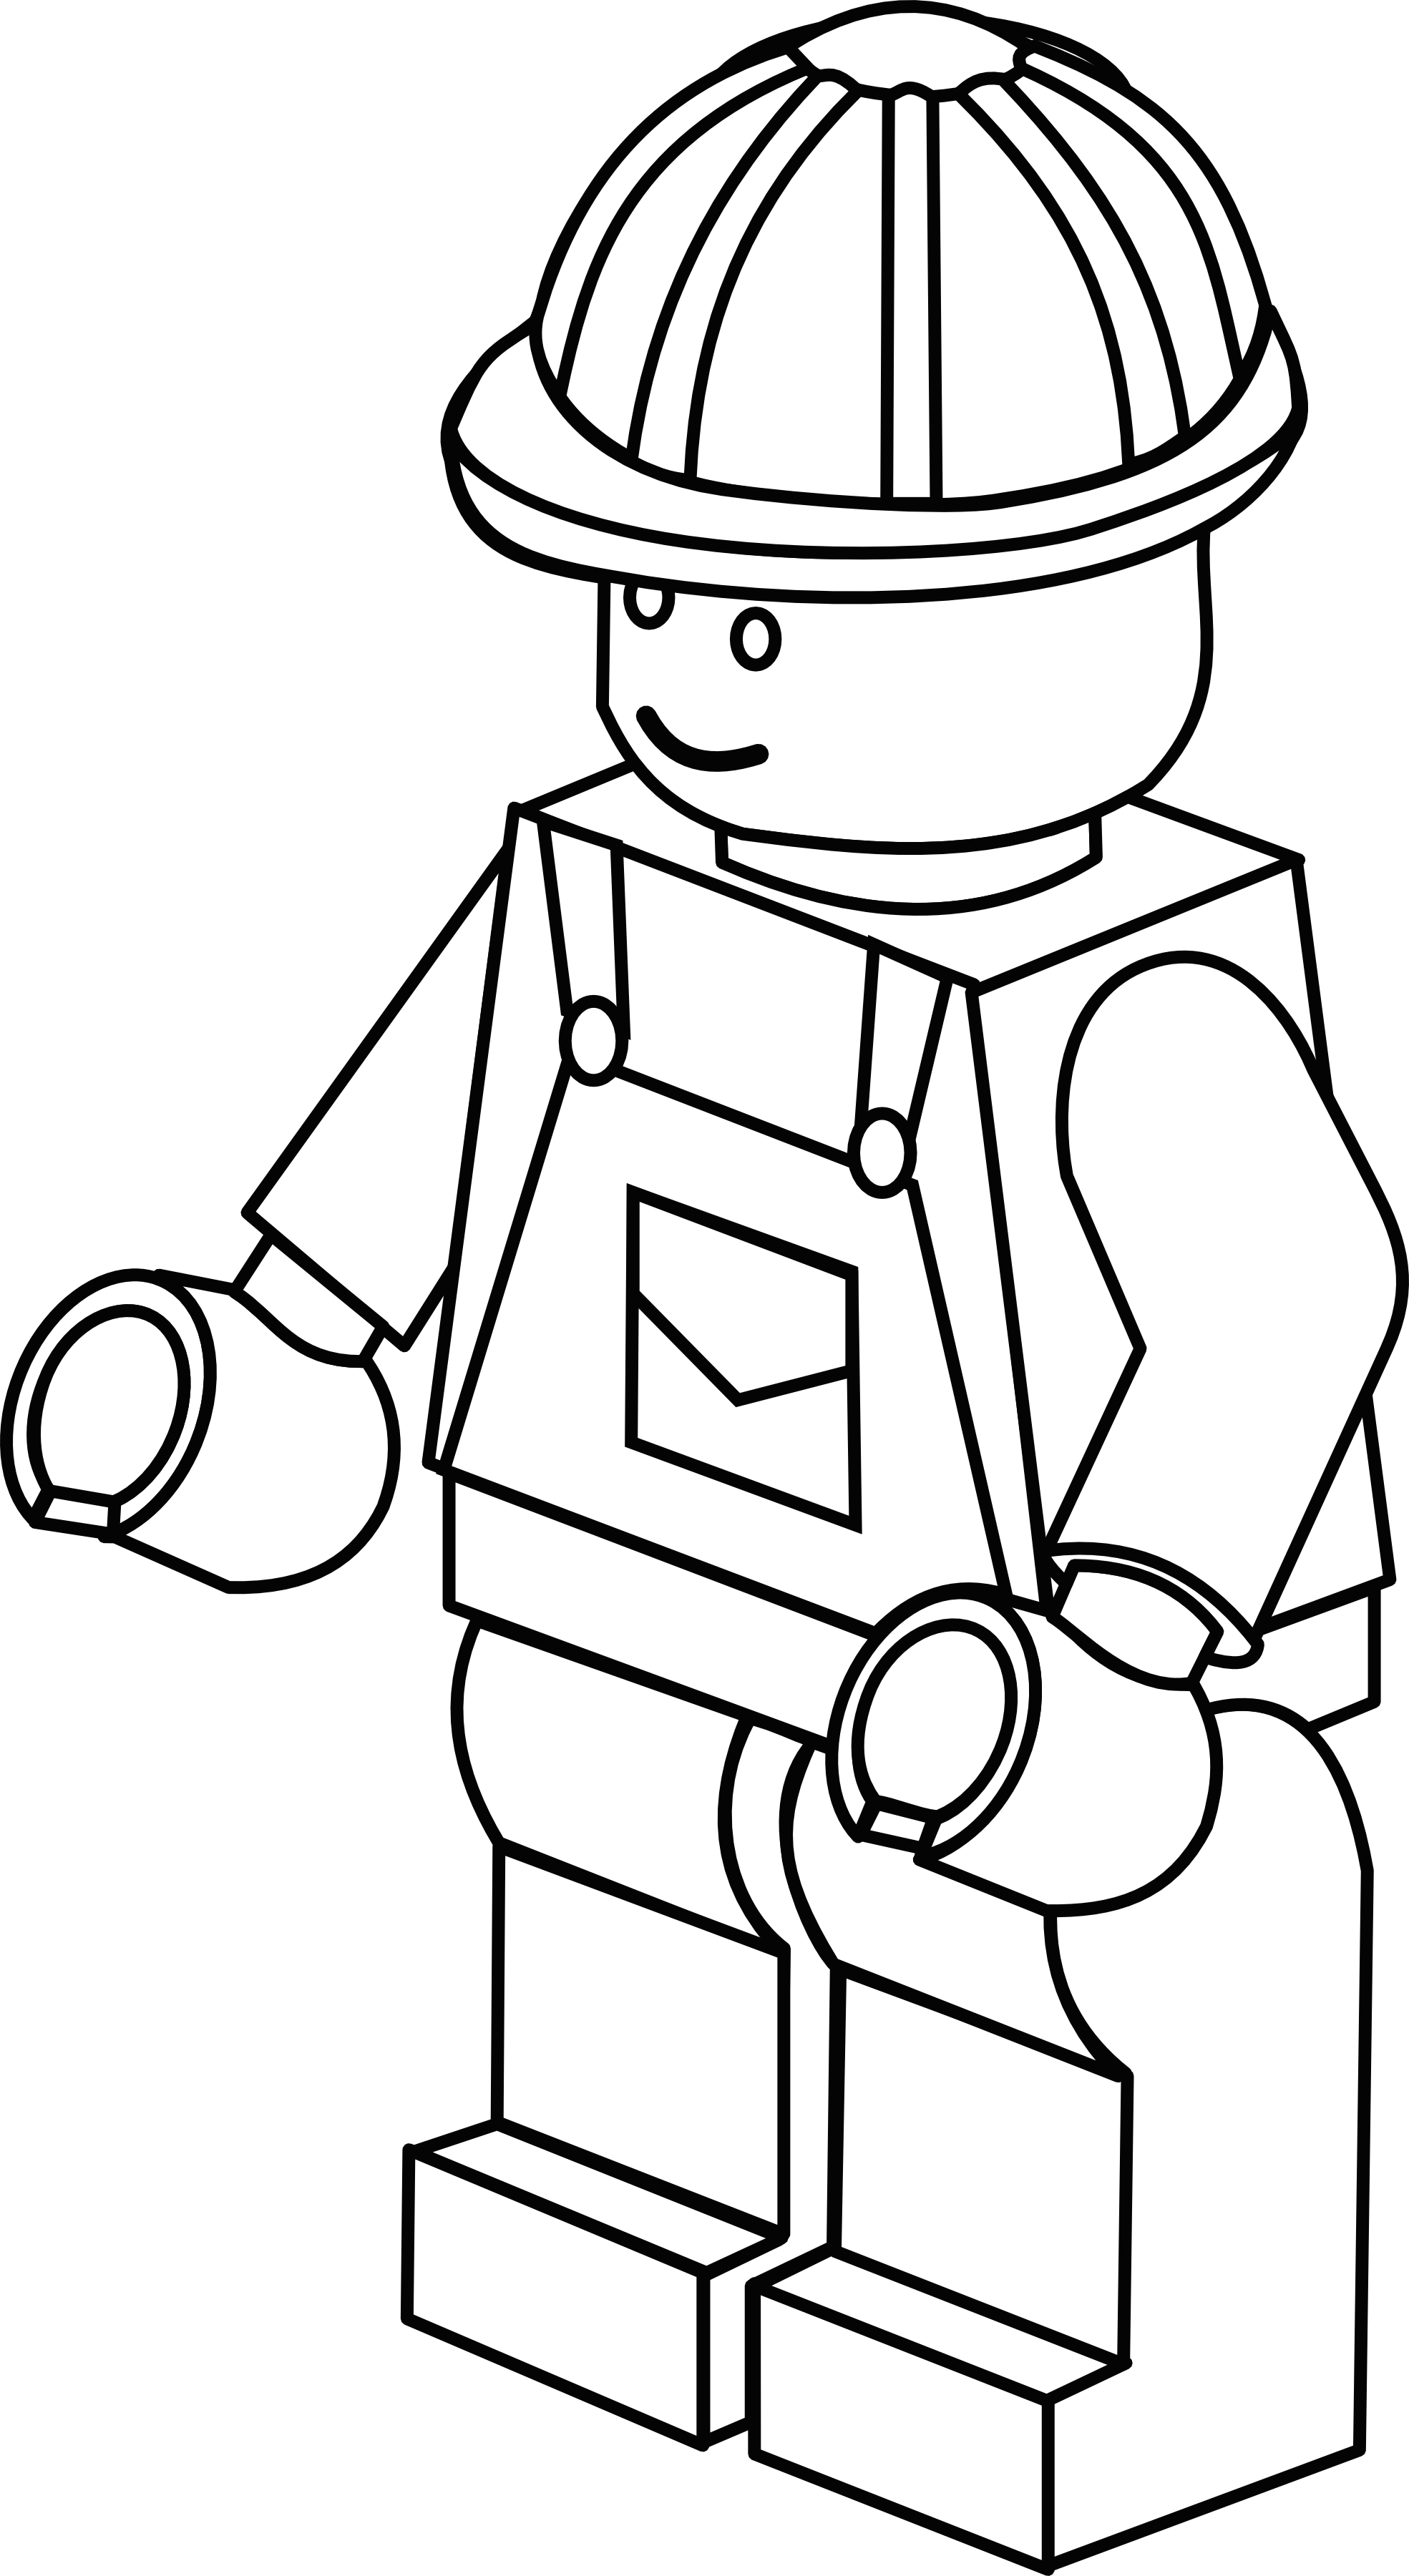 coloring pages of legos more complex lego figure colouring sheet lego coloring coloring of pages legos